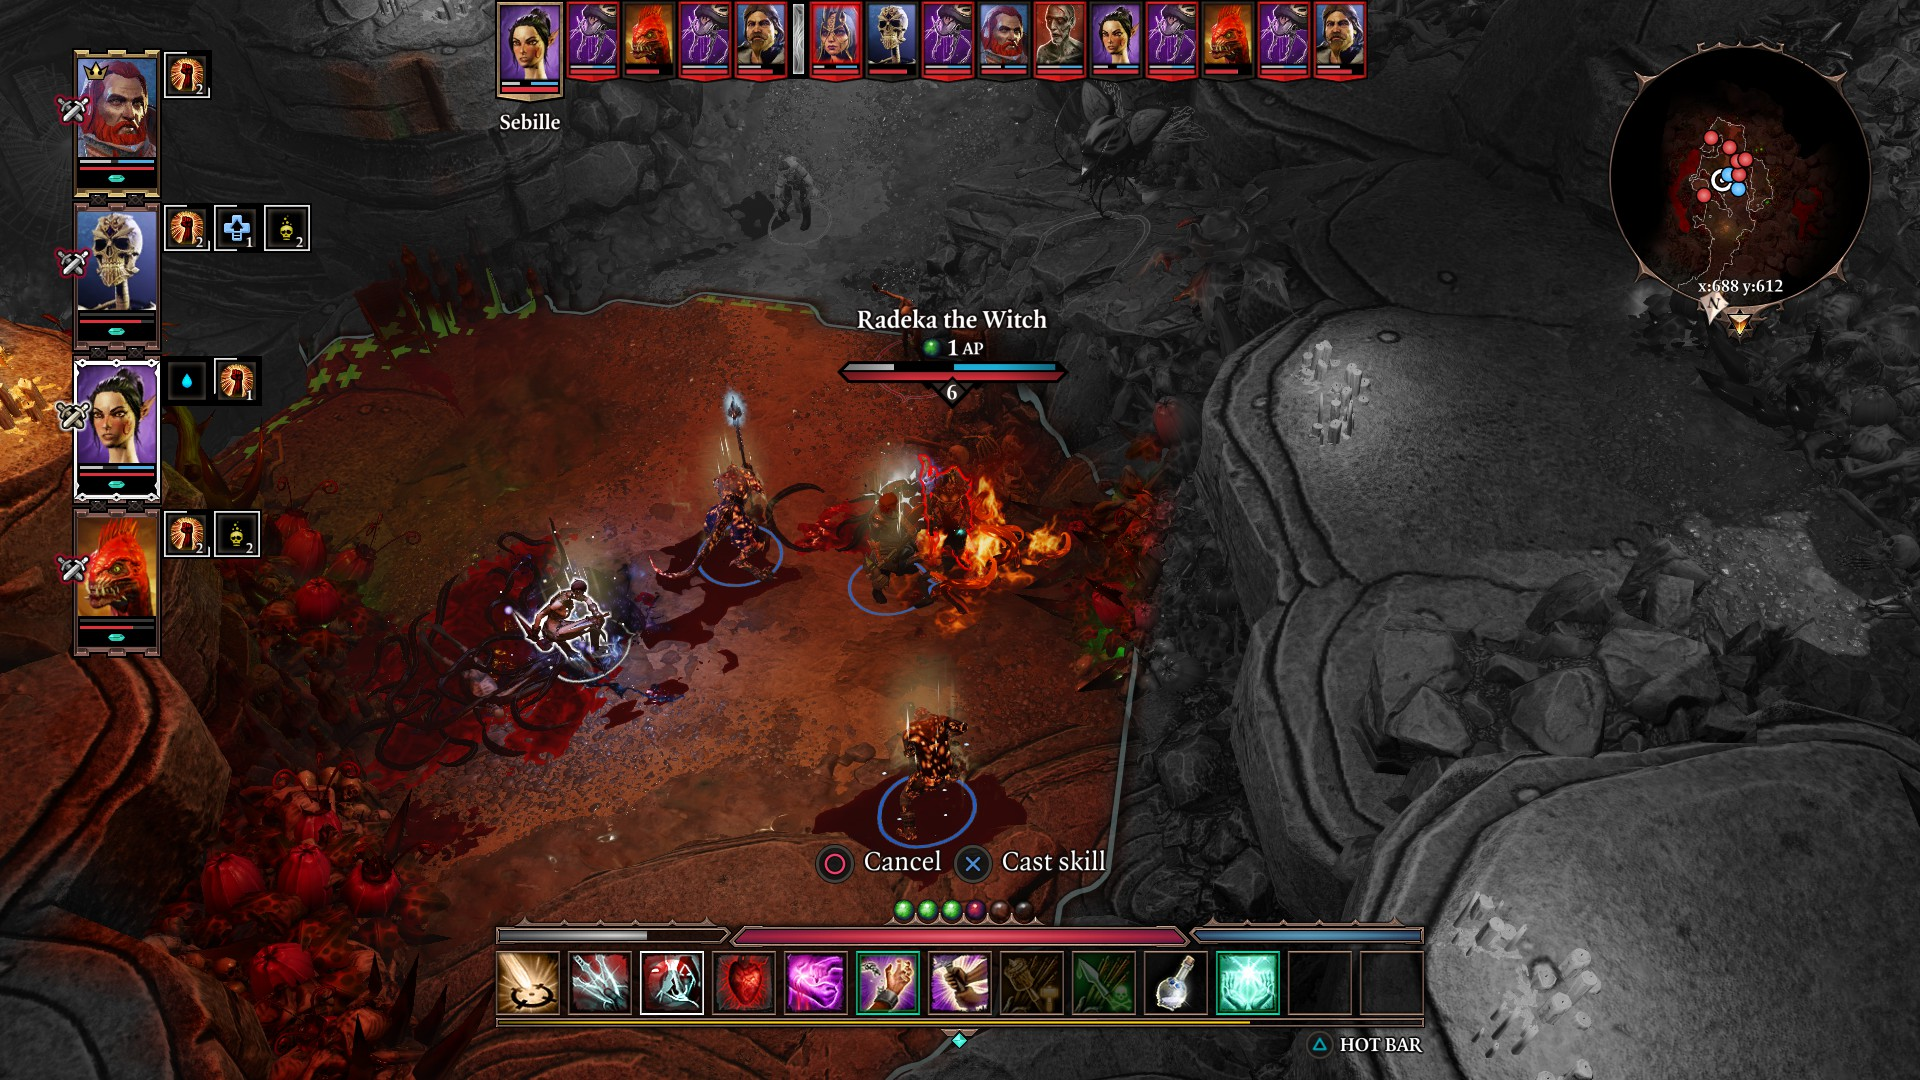 Divinity: Original Sin 2 Review - A New Divine is Born